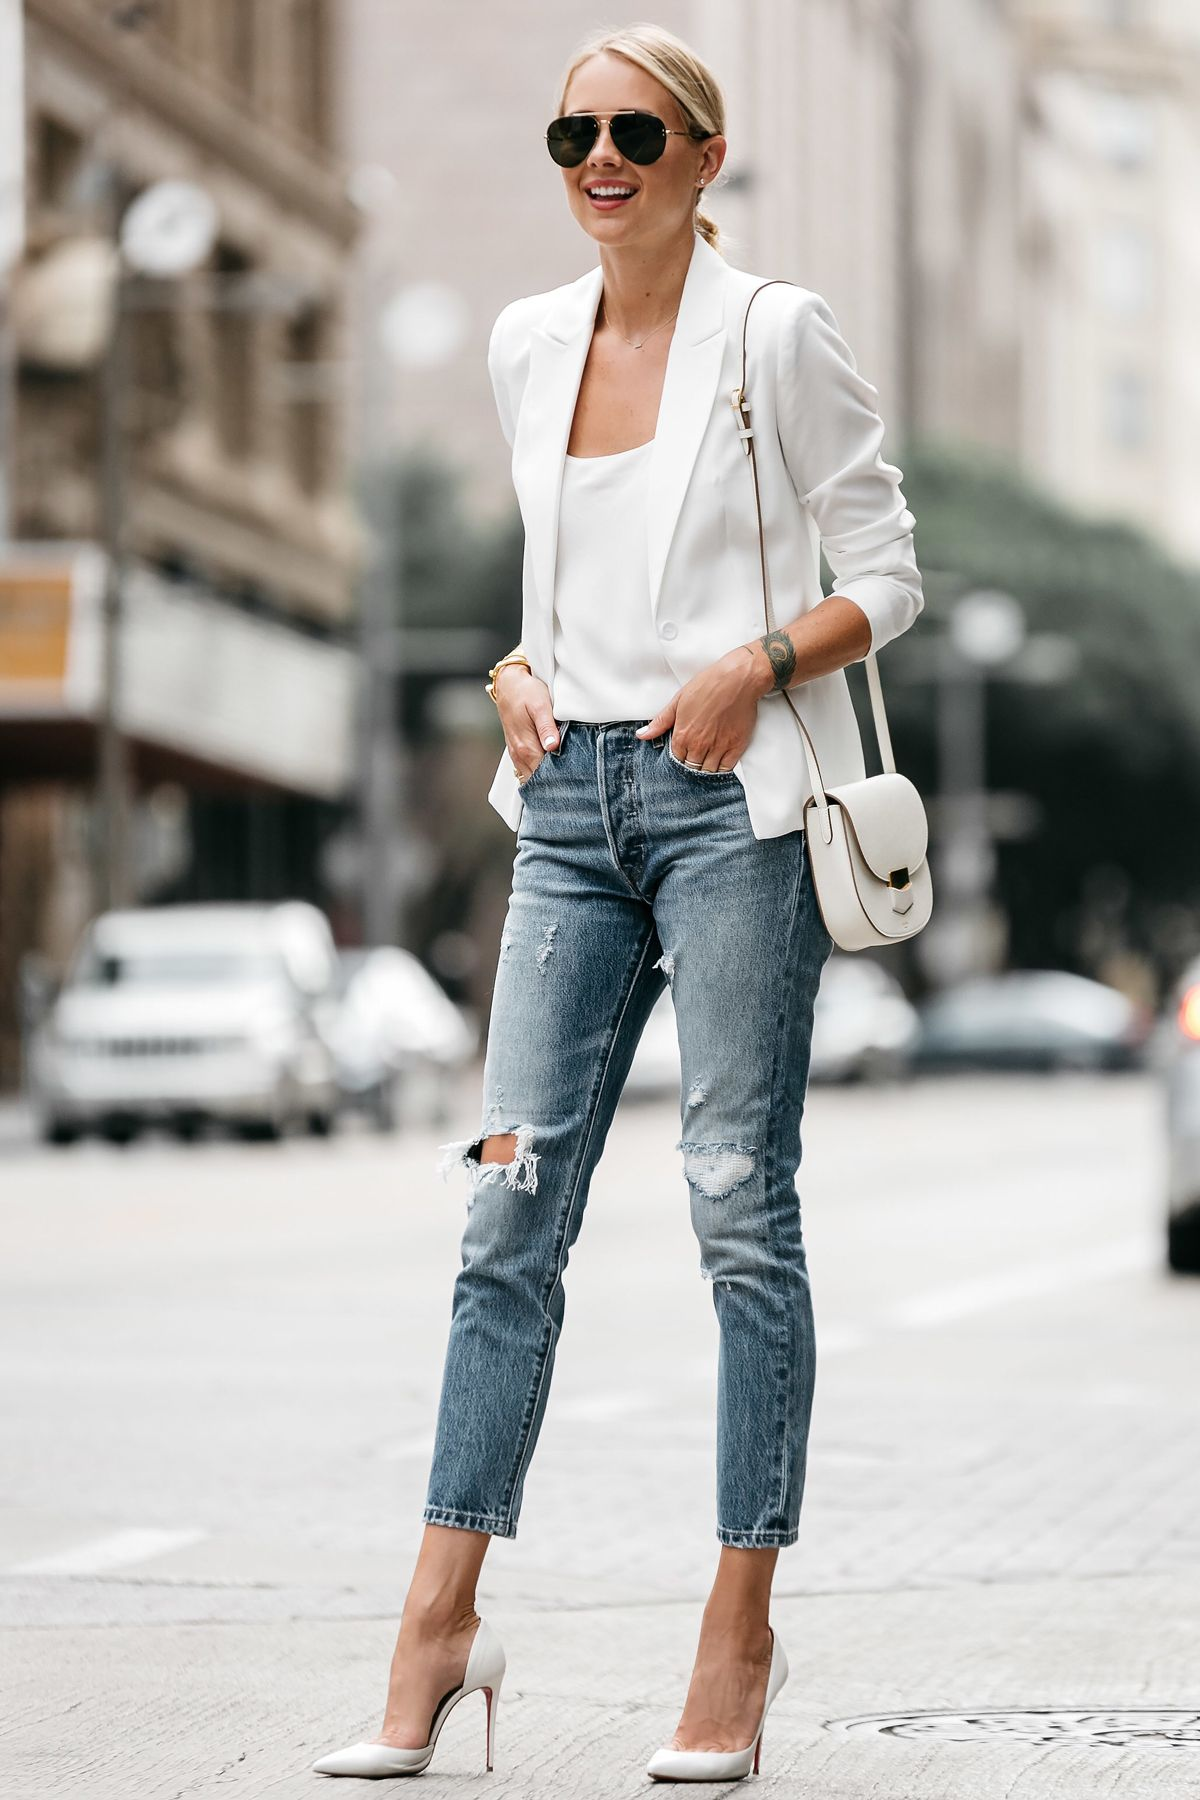 d066fb729ba Fashion Jackson Blonde Woman Wearing White Blazer Distressed Jeans Outfit, Street  Style, Dallas Blogger, Fashion Blogger